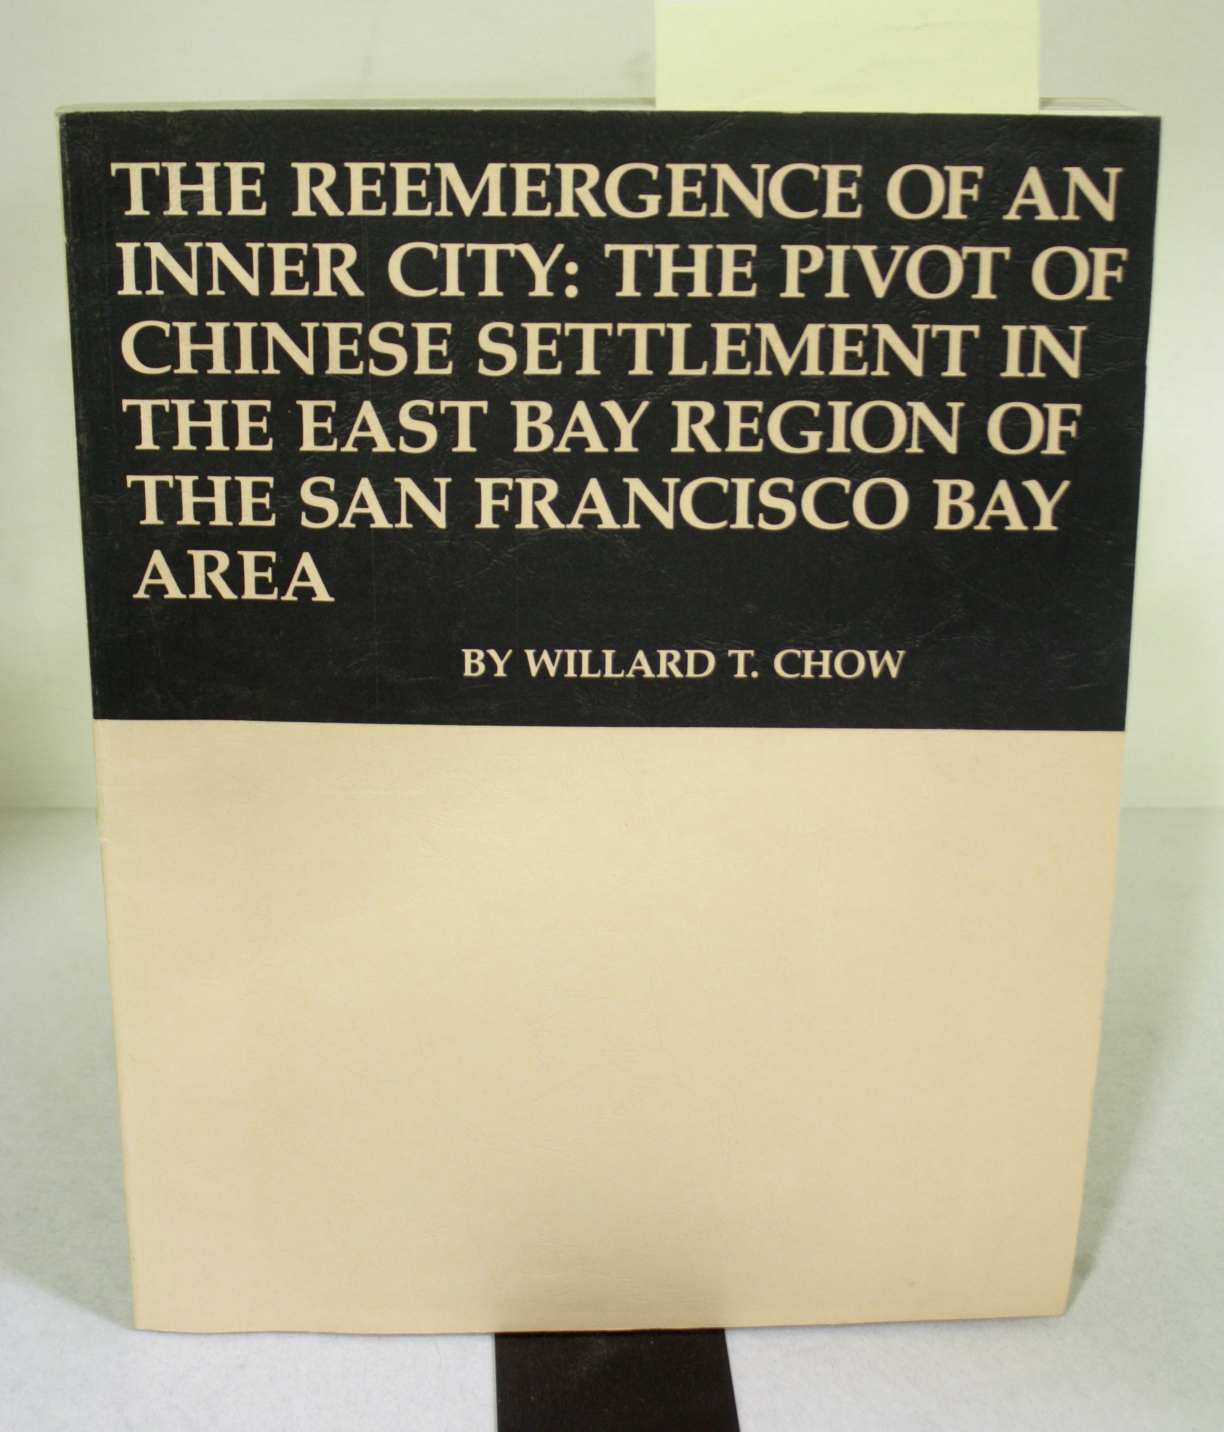 The Reemergence of an Inner City; the Pivot of Chinese Settlement in the East Bay Region of the San Francisco Bay Area BWB16362038